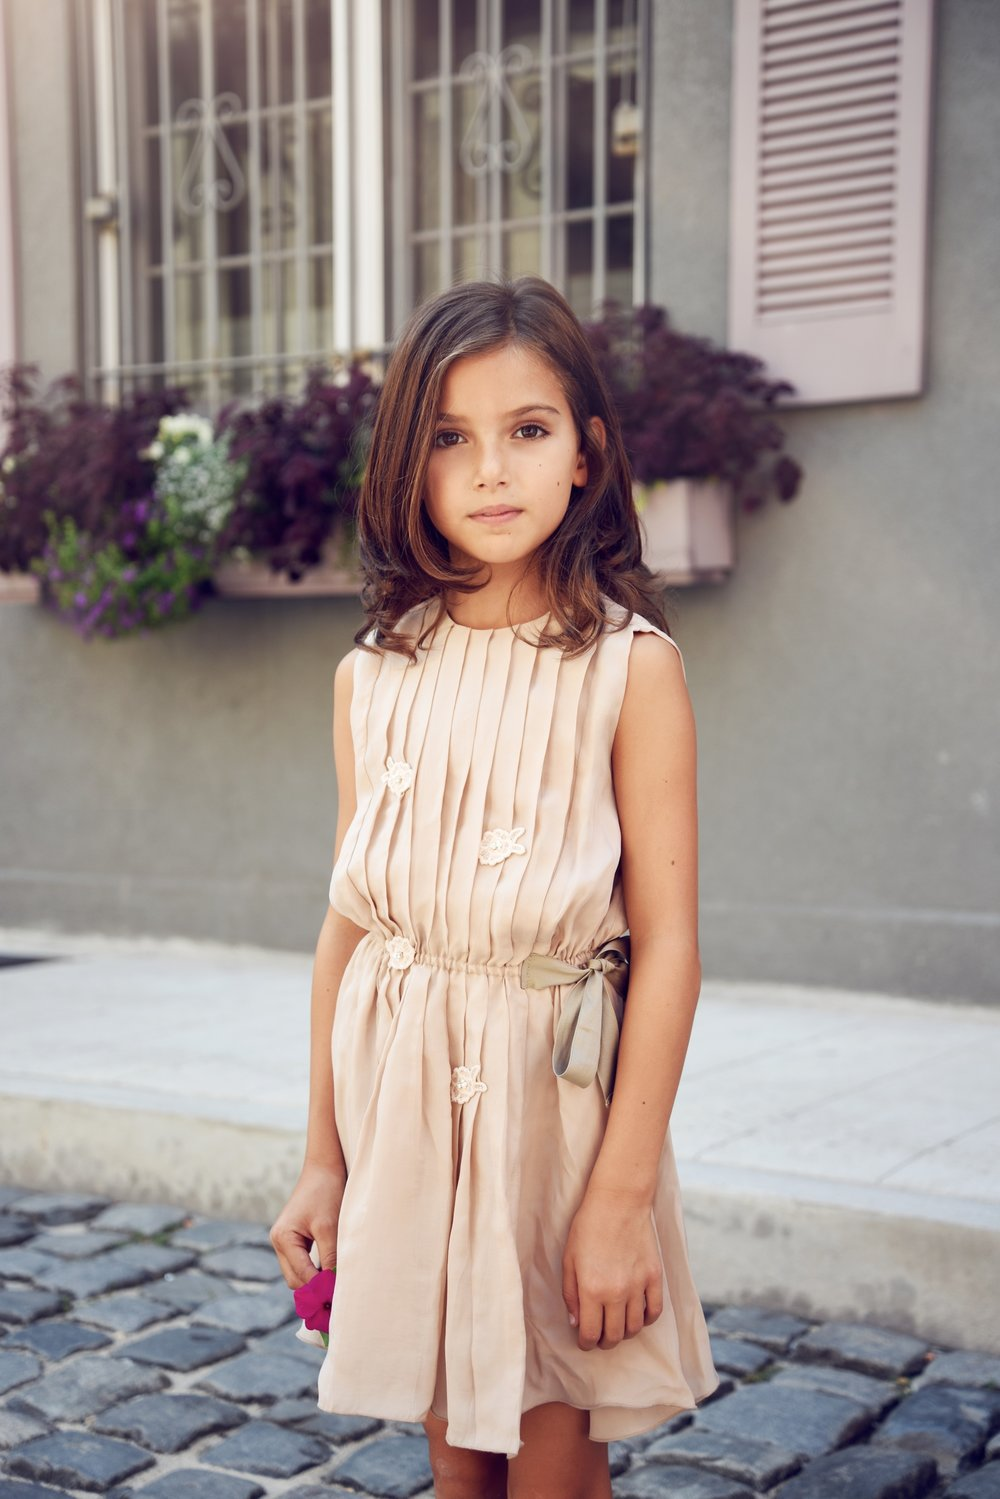 Enfant+Street+Style+by+Gina+Kim+Photography+Lamantine+Paris+dress.jpeg